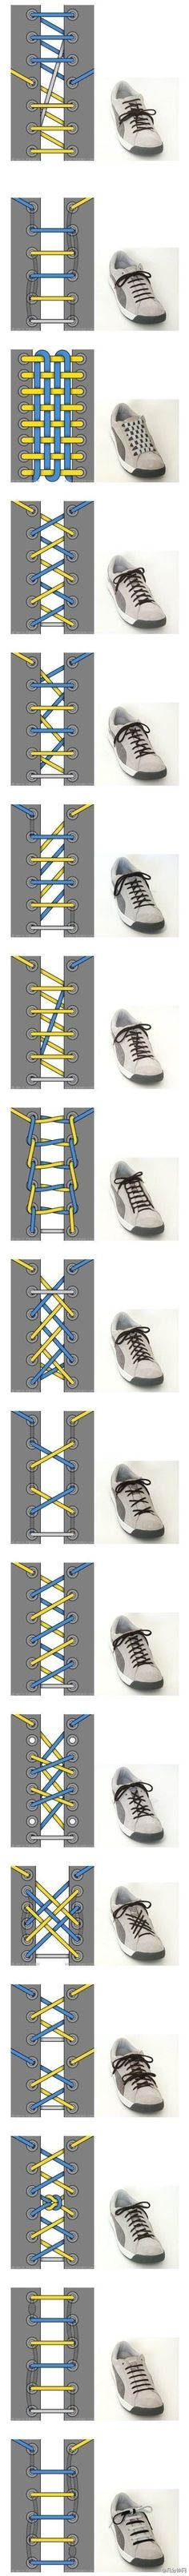 Ways to tie your shoe laces.